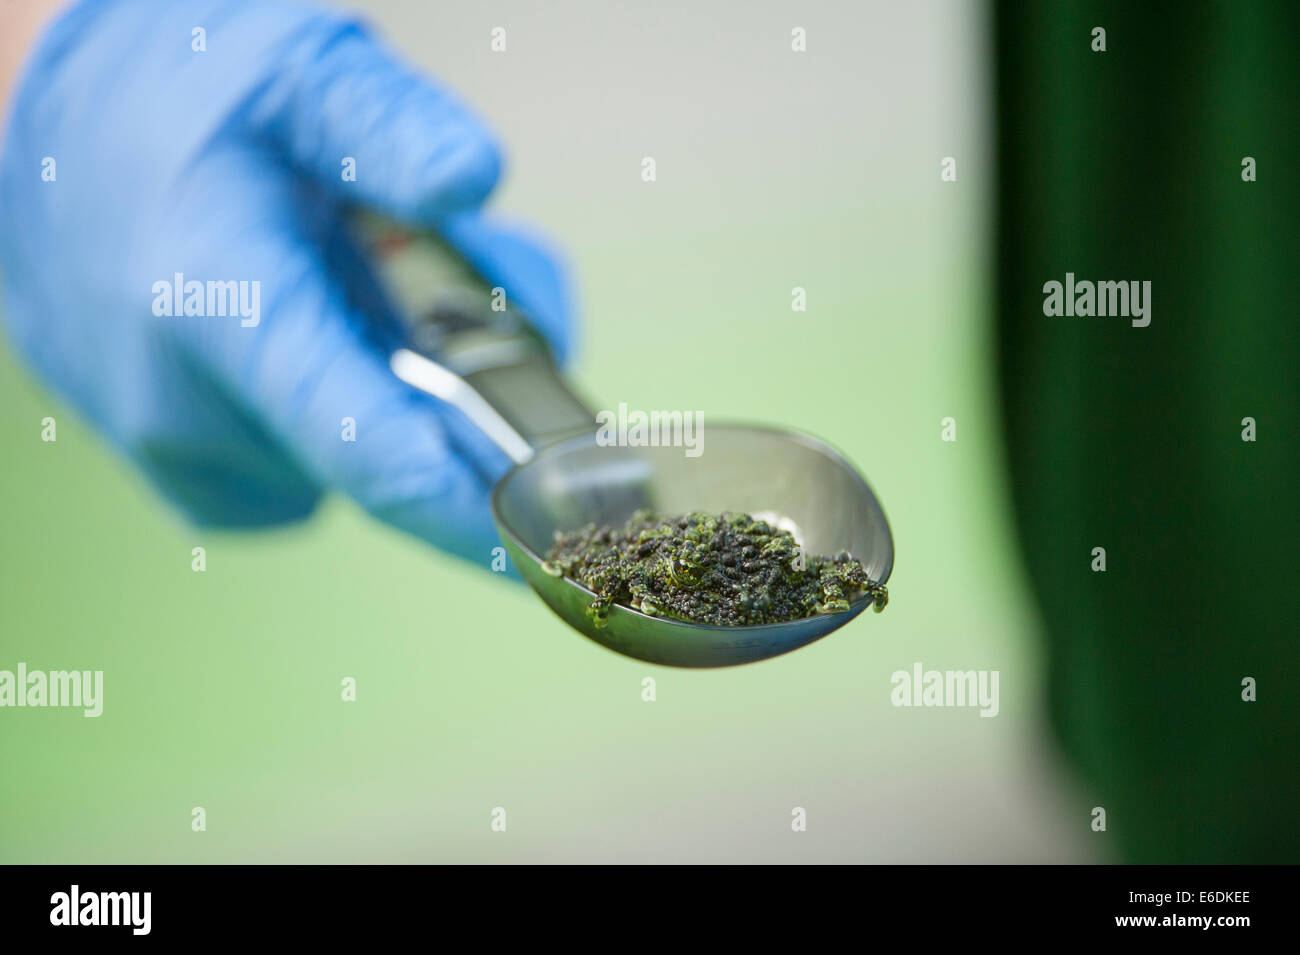 London Zoo, London UK. Thursday 21st August 2014. A Mossy Frog is weighed at London Zoo's annual weigh-in 2014. - Stock Image